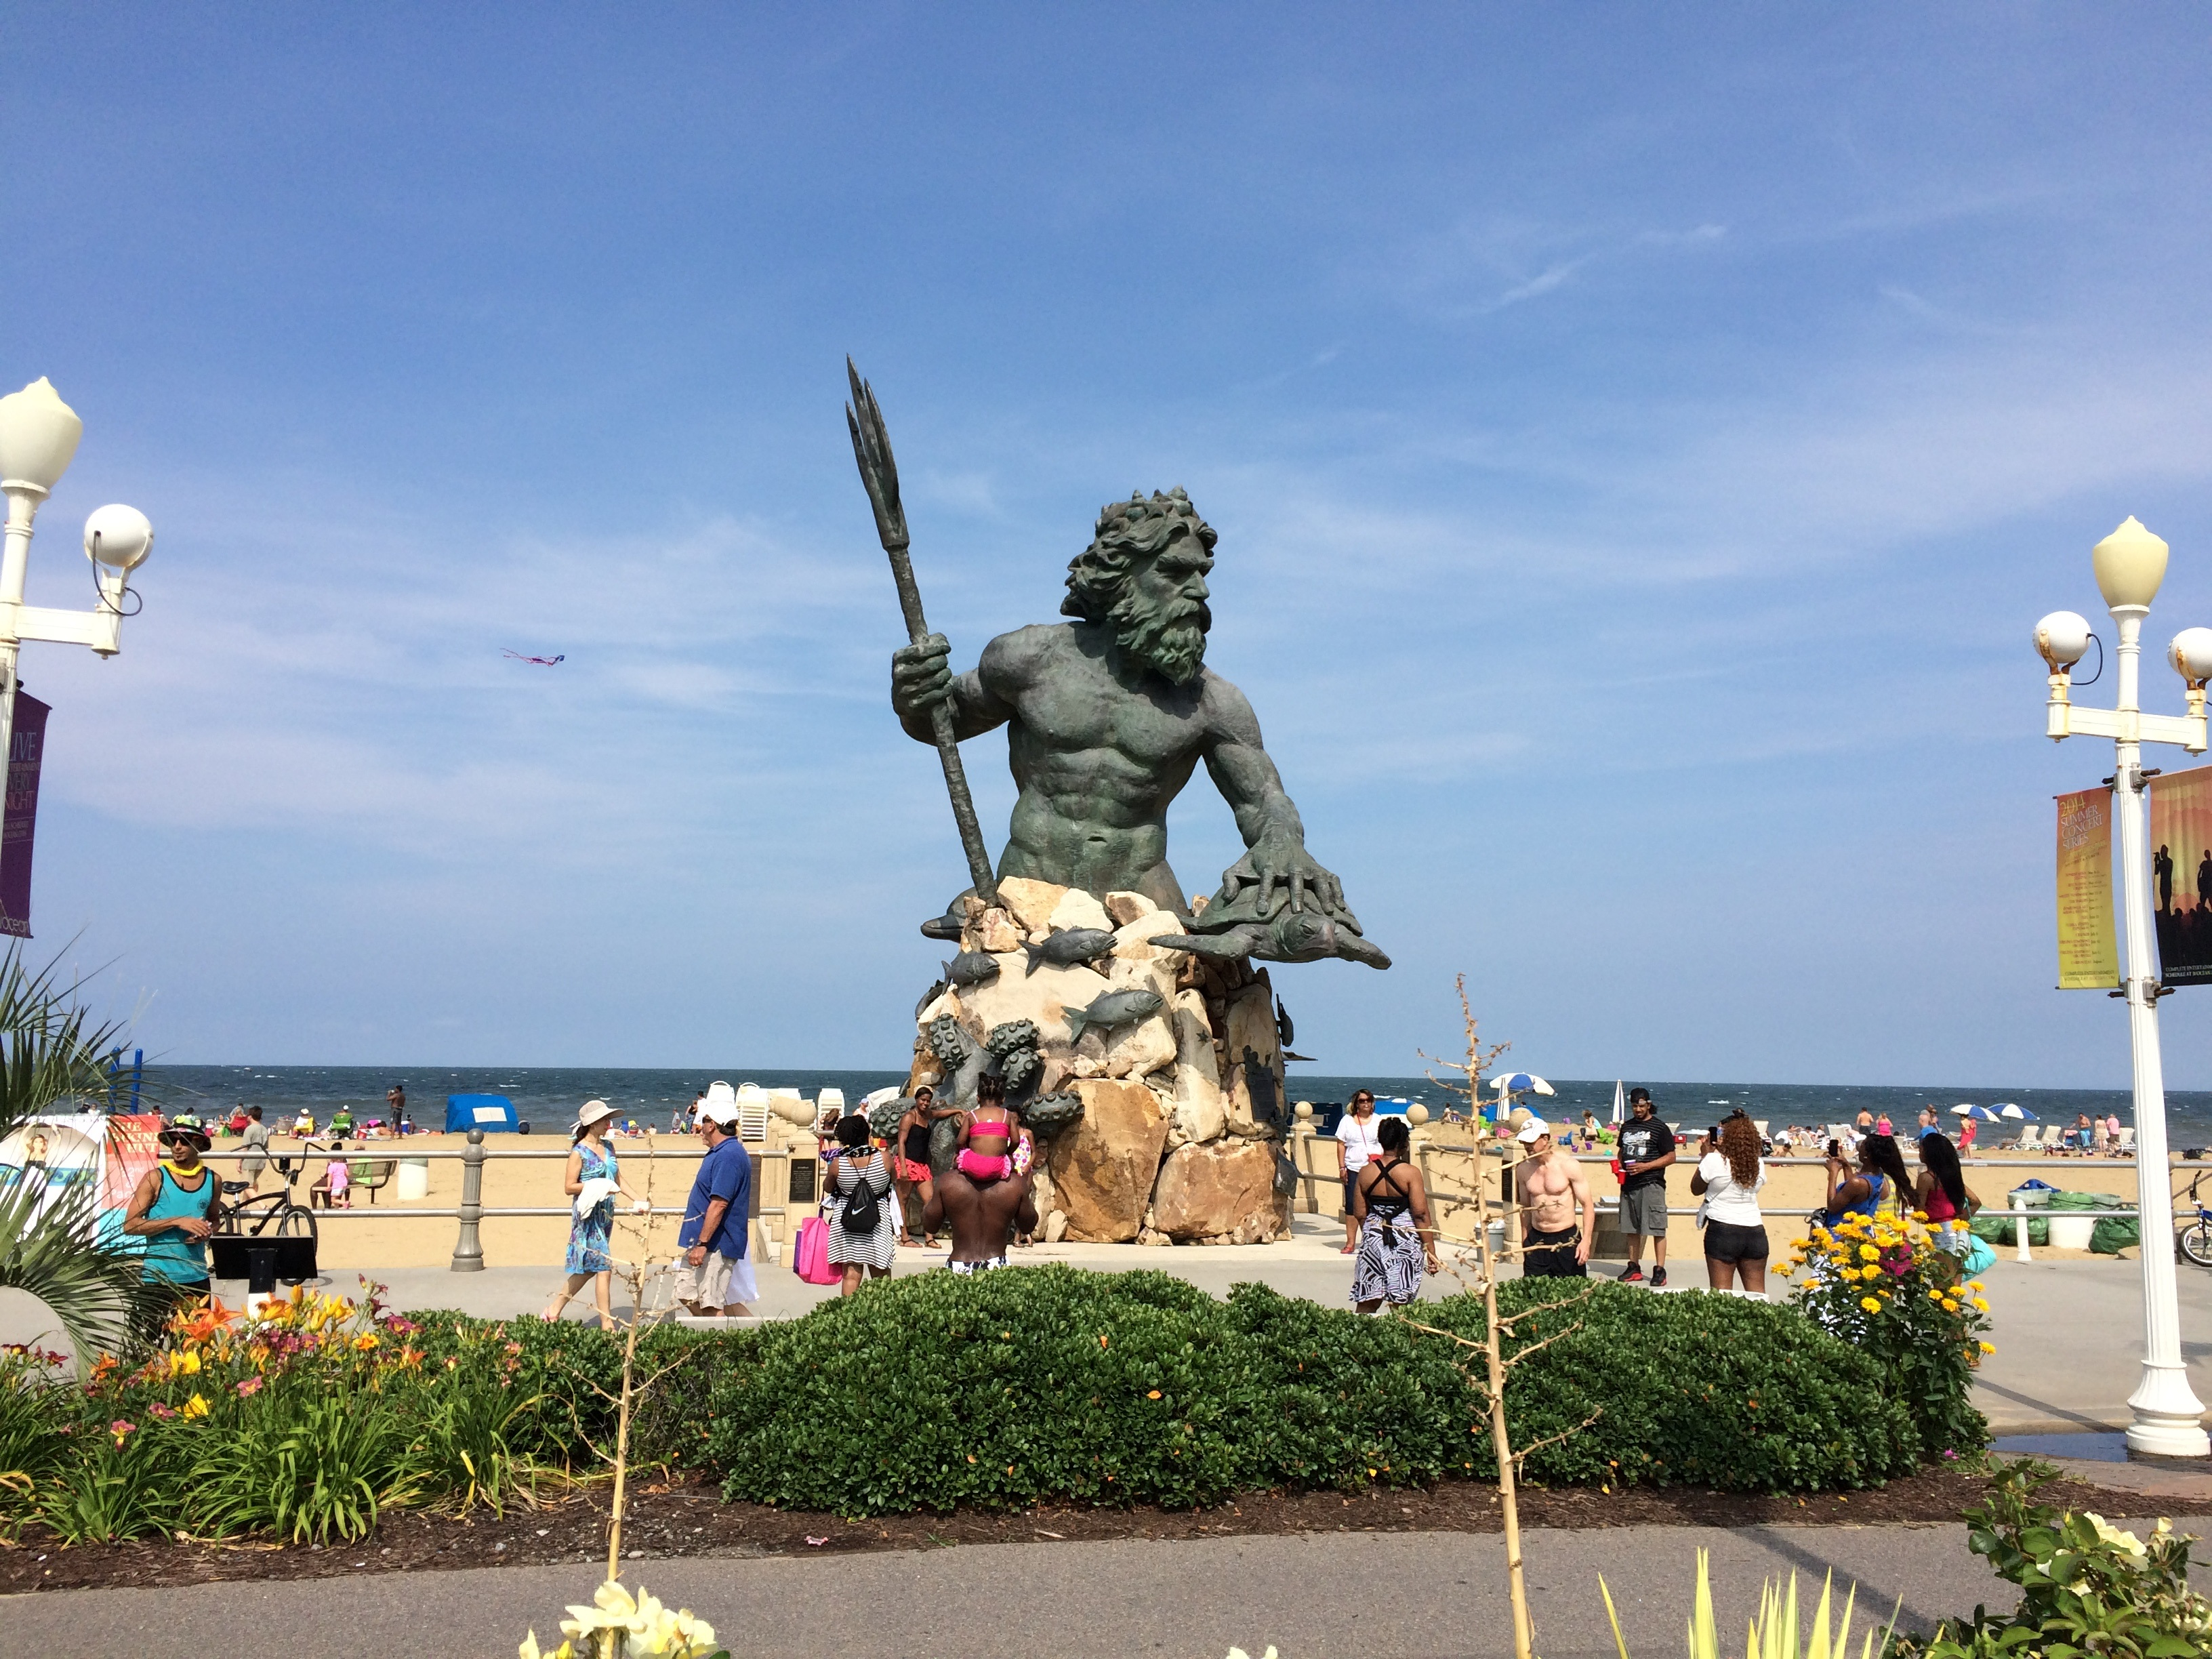 Statue of regal King Neptune with conch at beach area.